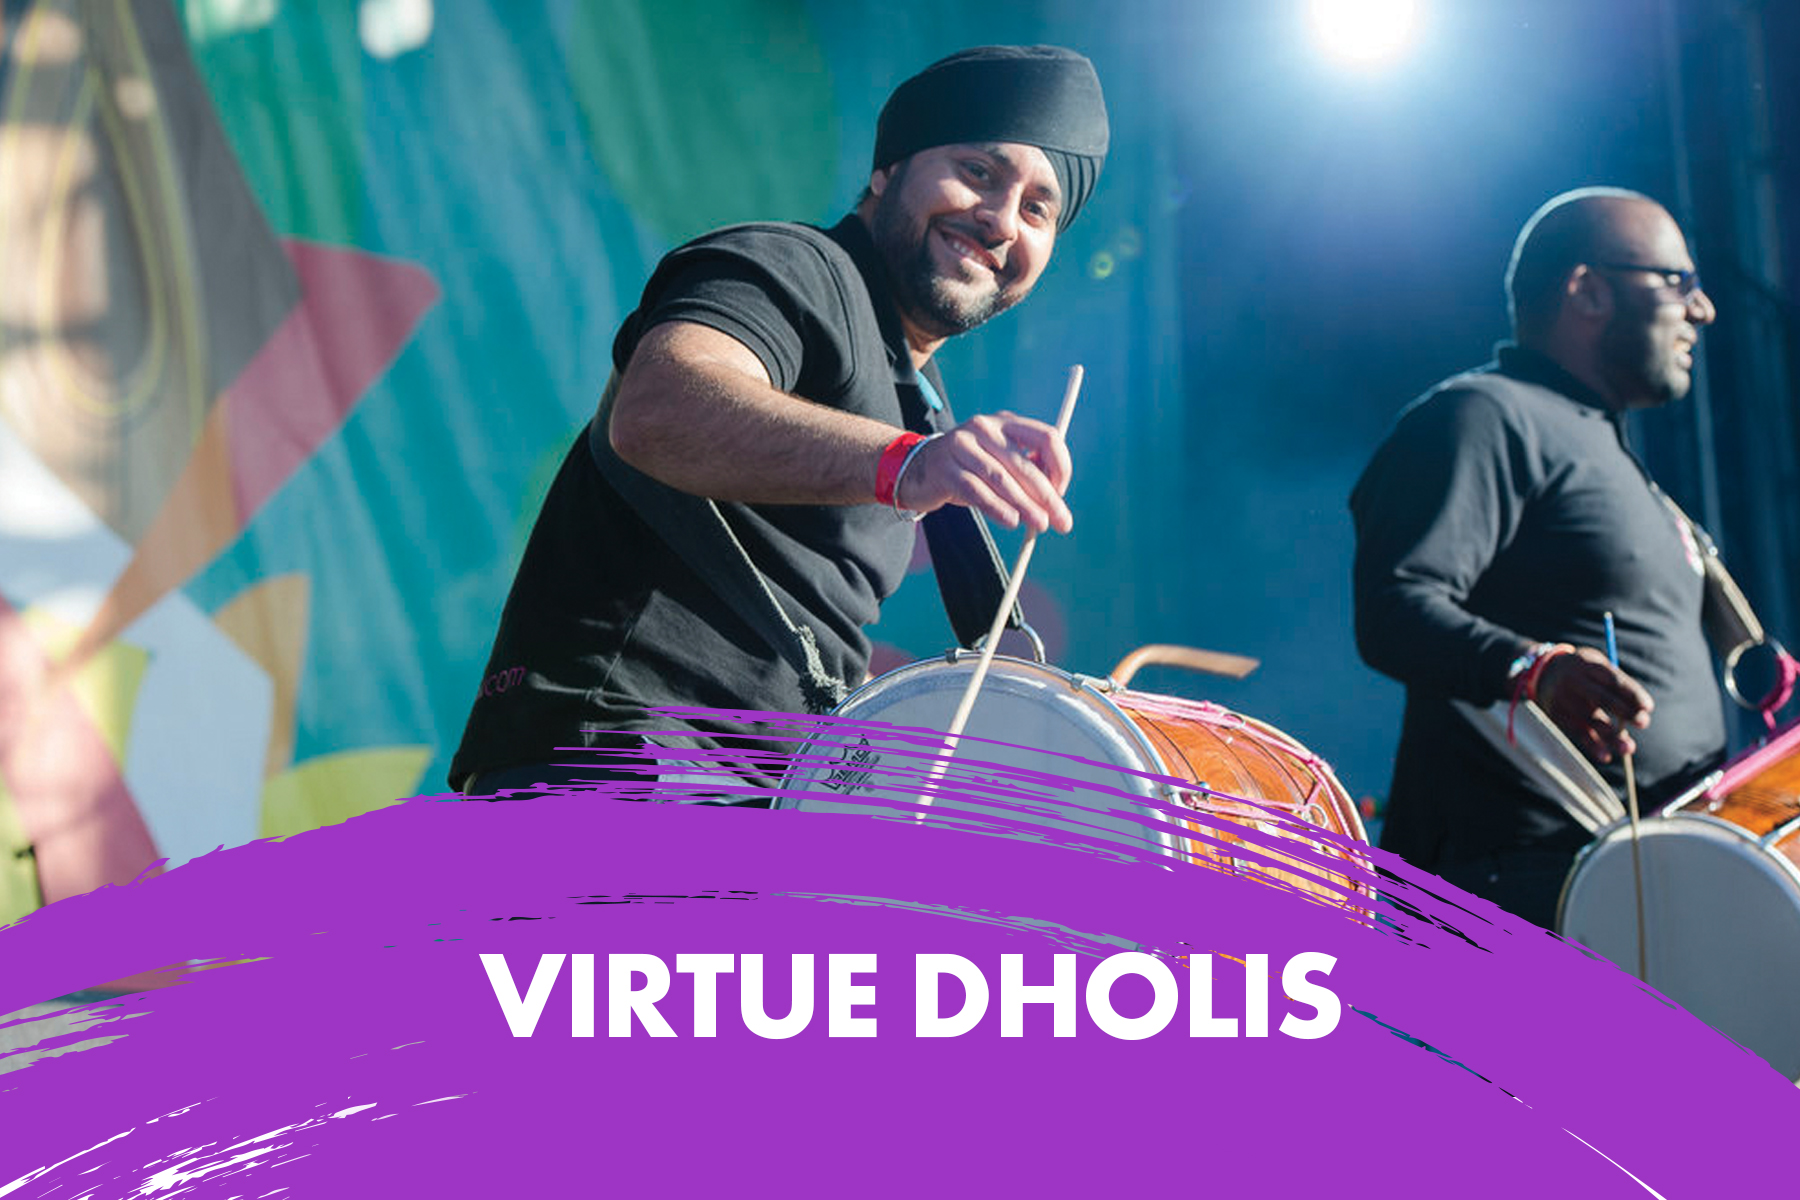 virtue-dholis_large.jpg